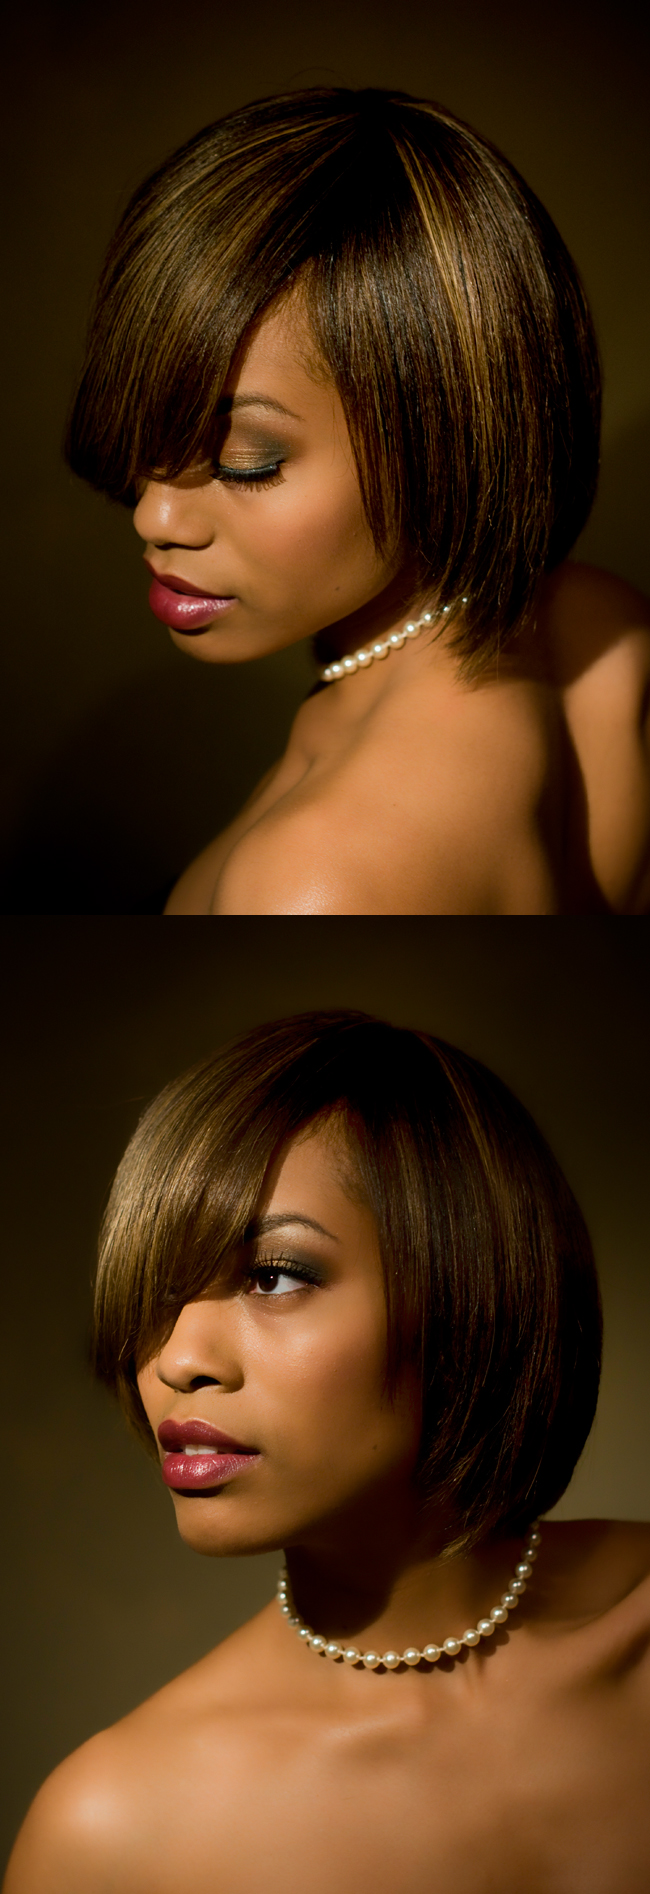 Male and Female model photo shoot of LightWriterPhotography and STARR LACY, hair styled by bridgette jackson, makeup by Adorned